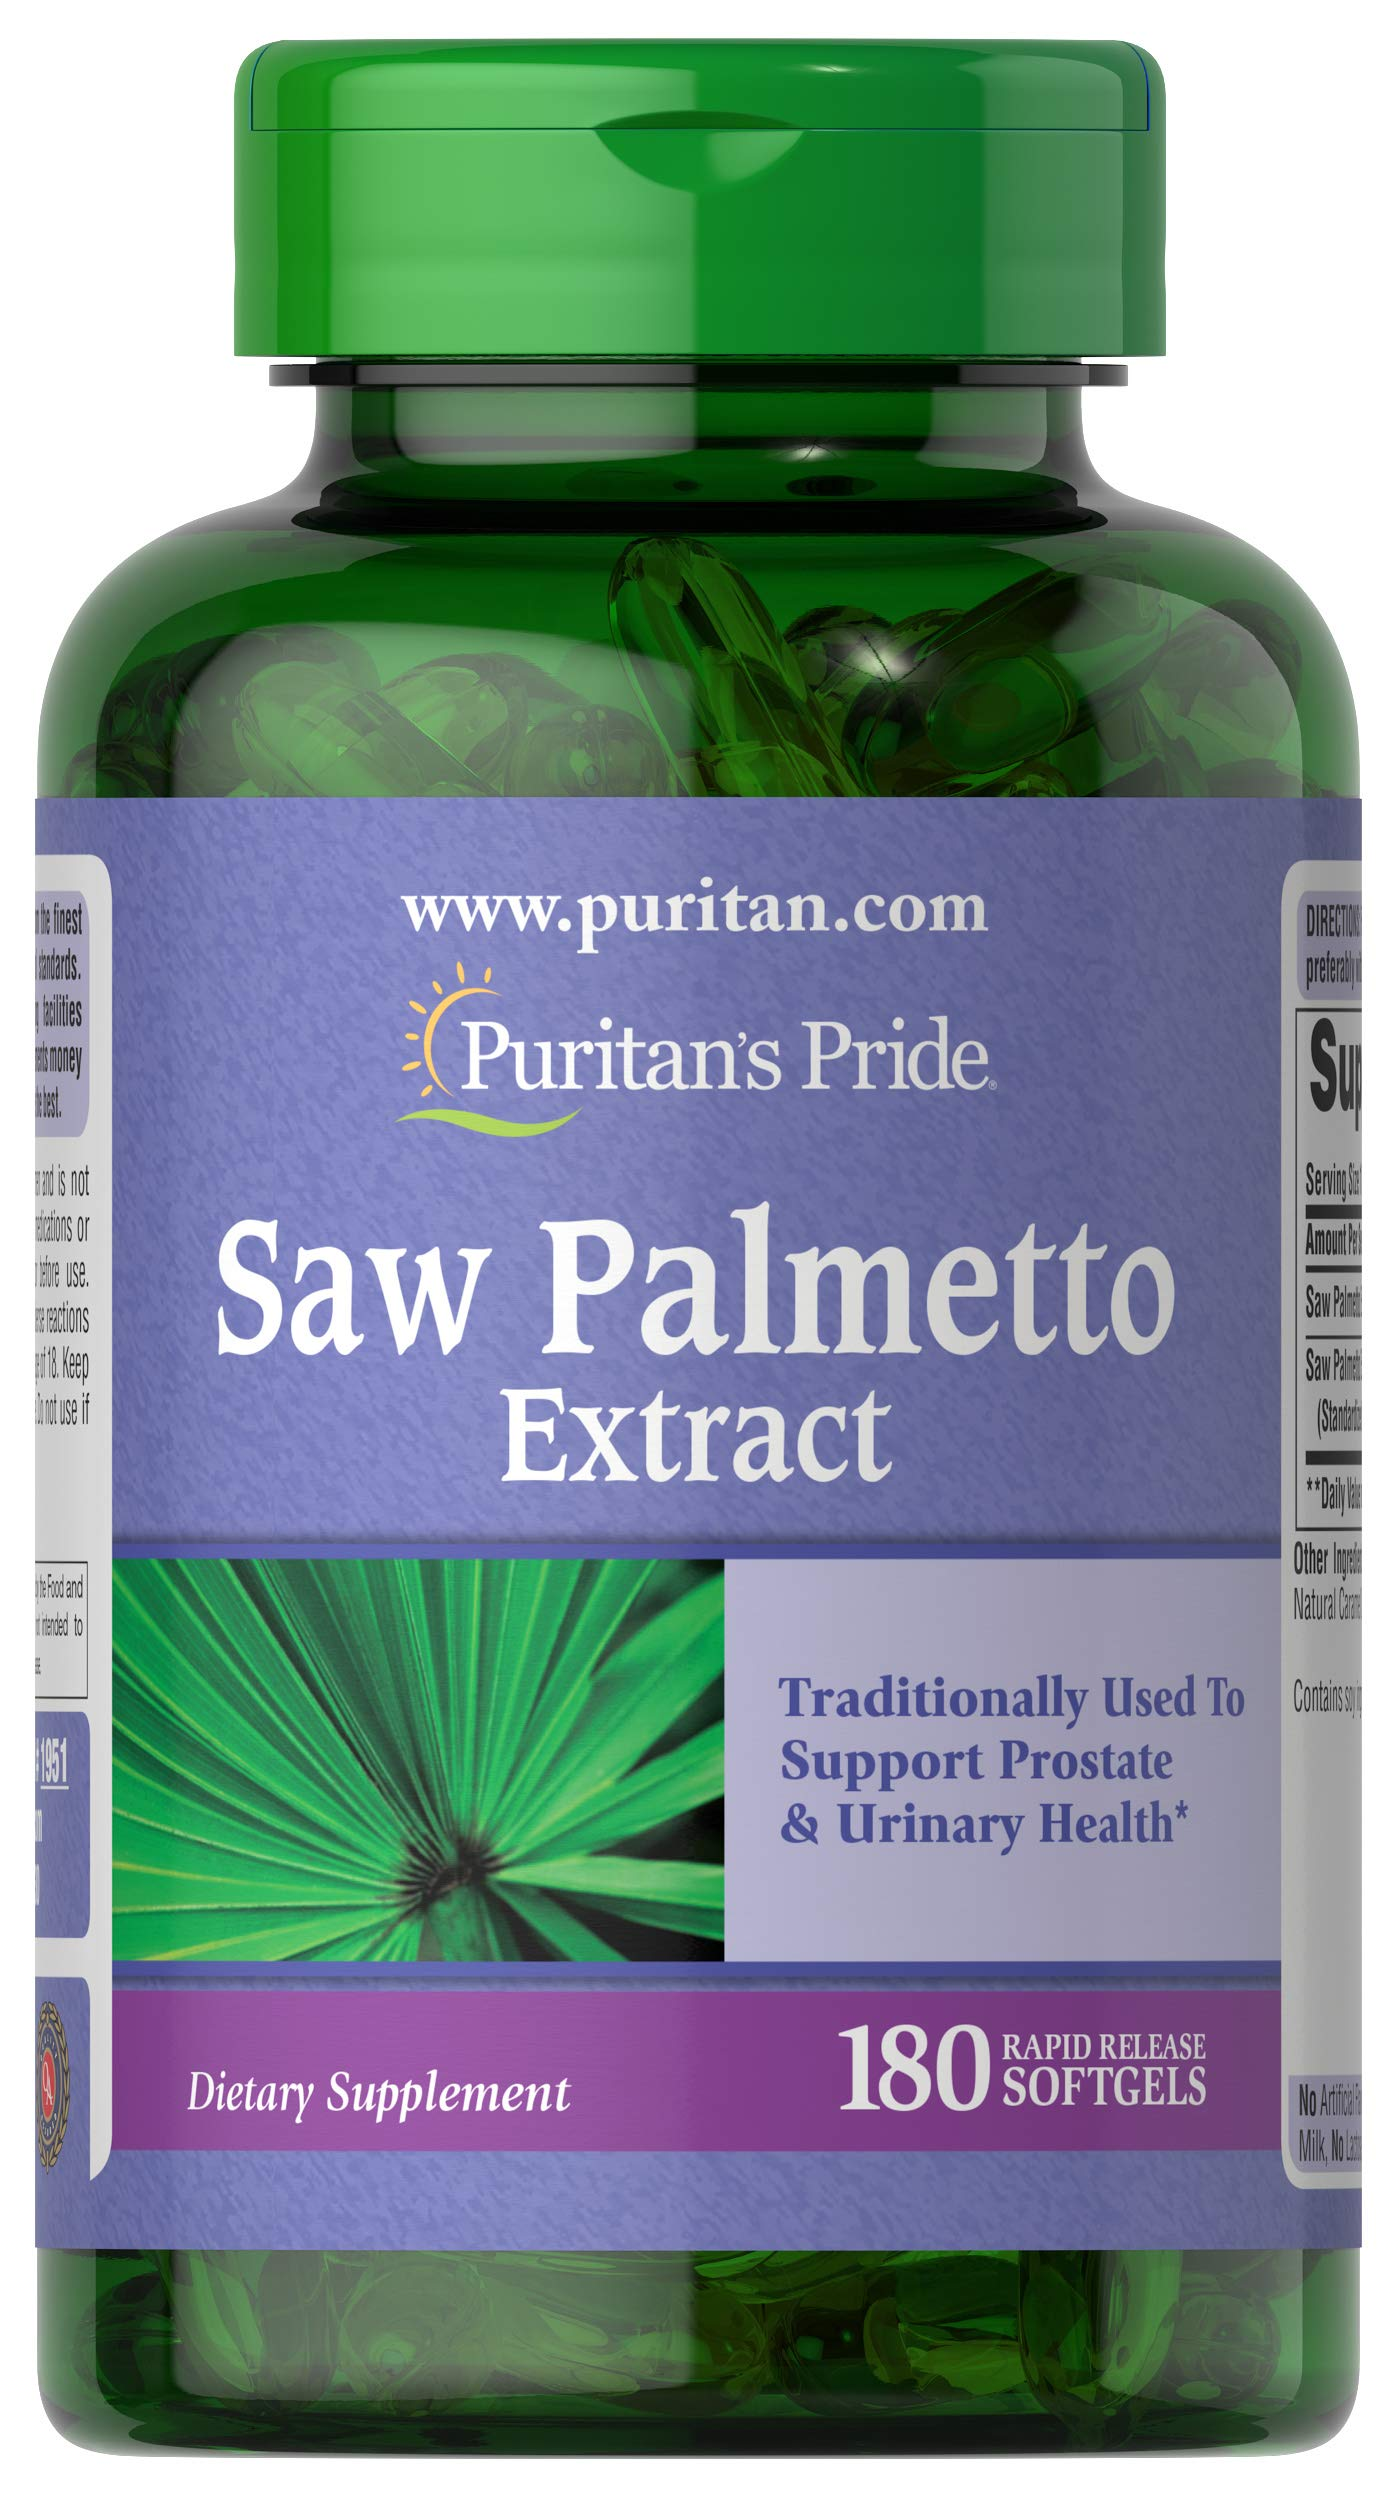 Puritan's Pride Saw Palmetto Extract, 180 Softgels (Packaging May Vary)